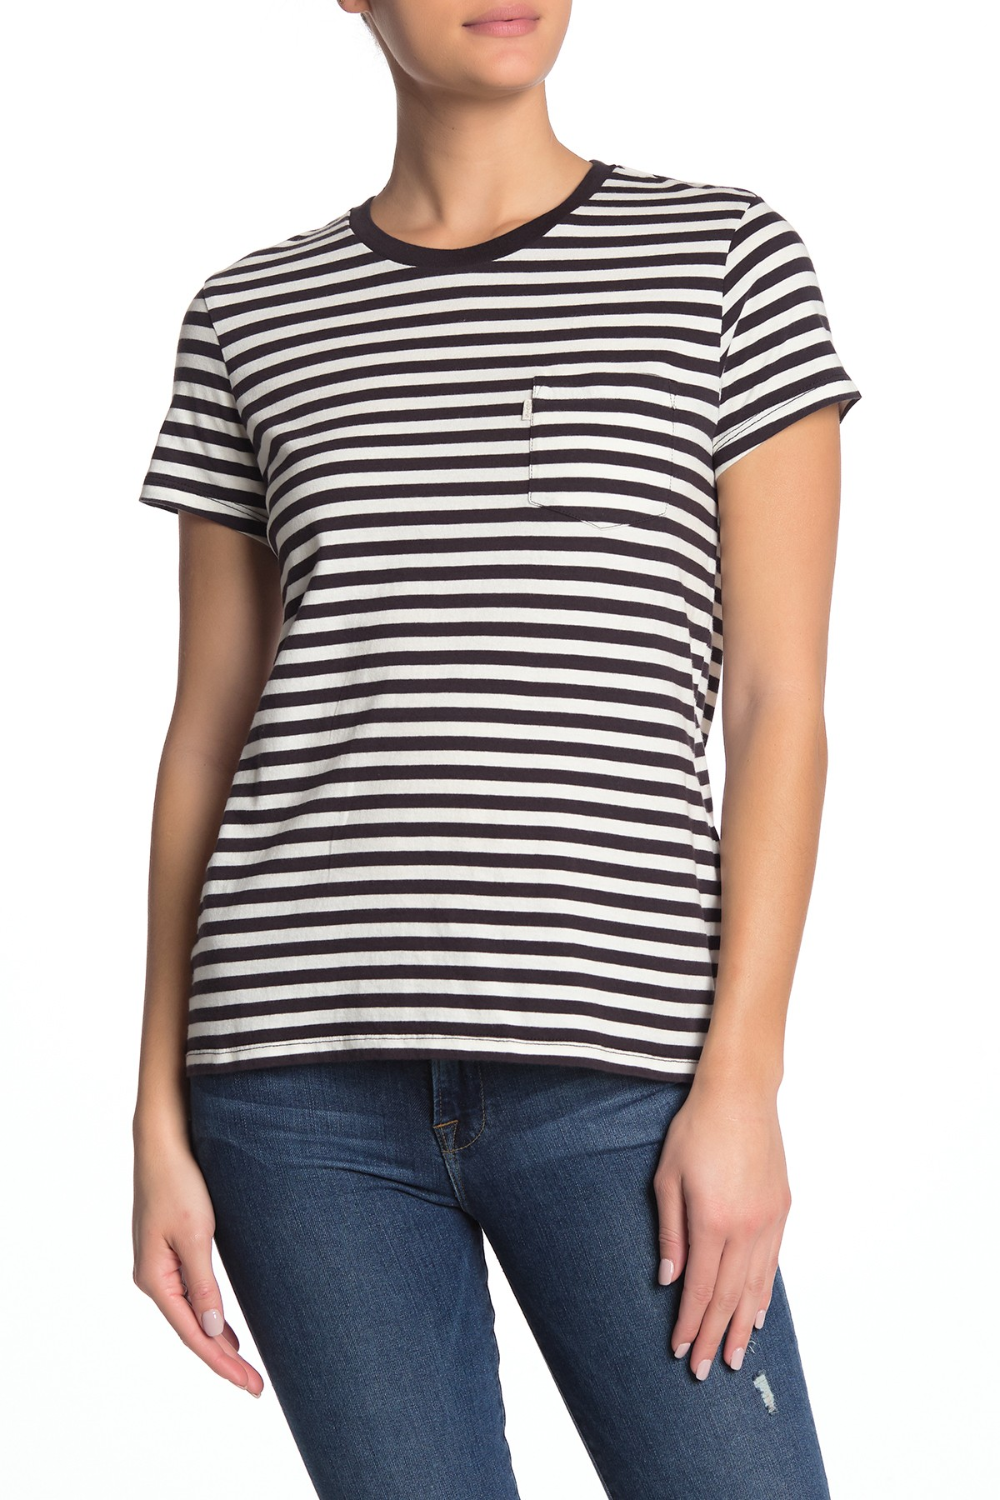 Levi's | Liza Perfect Pocket Crew Neck T-Shirt #nordstromrack